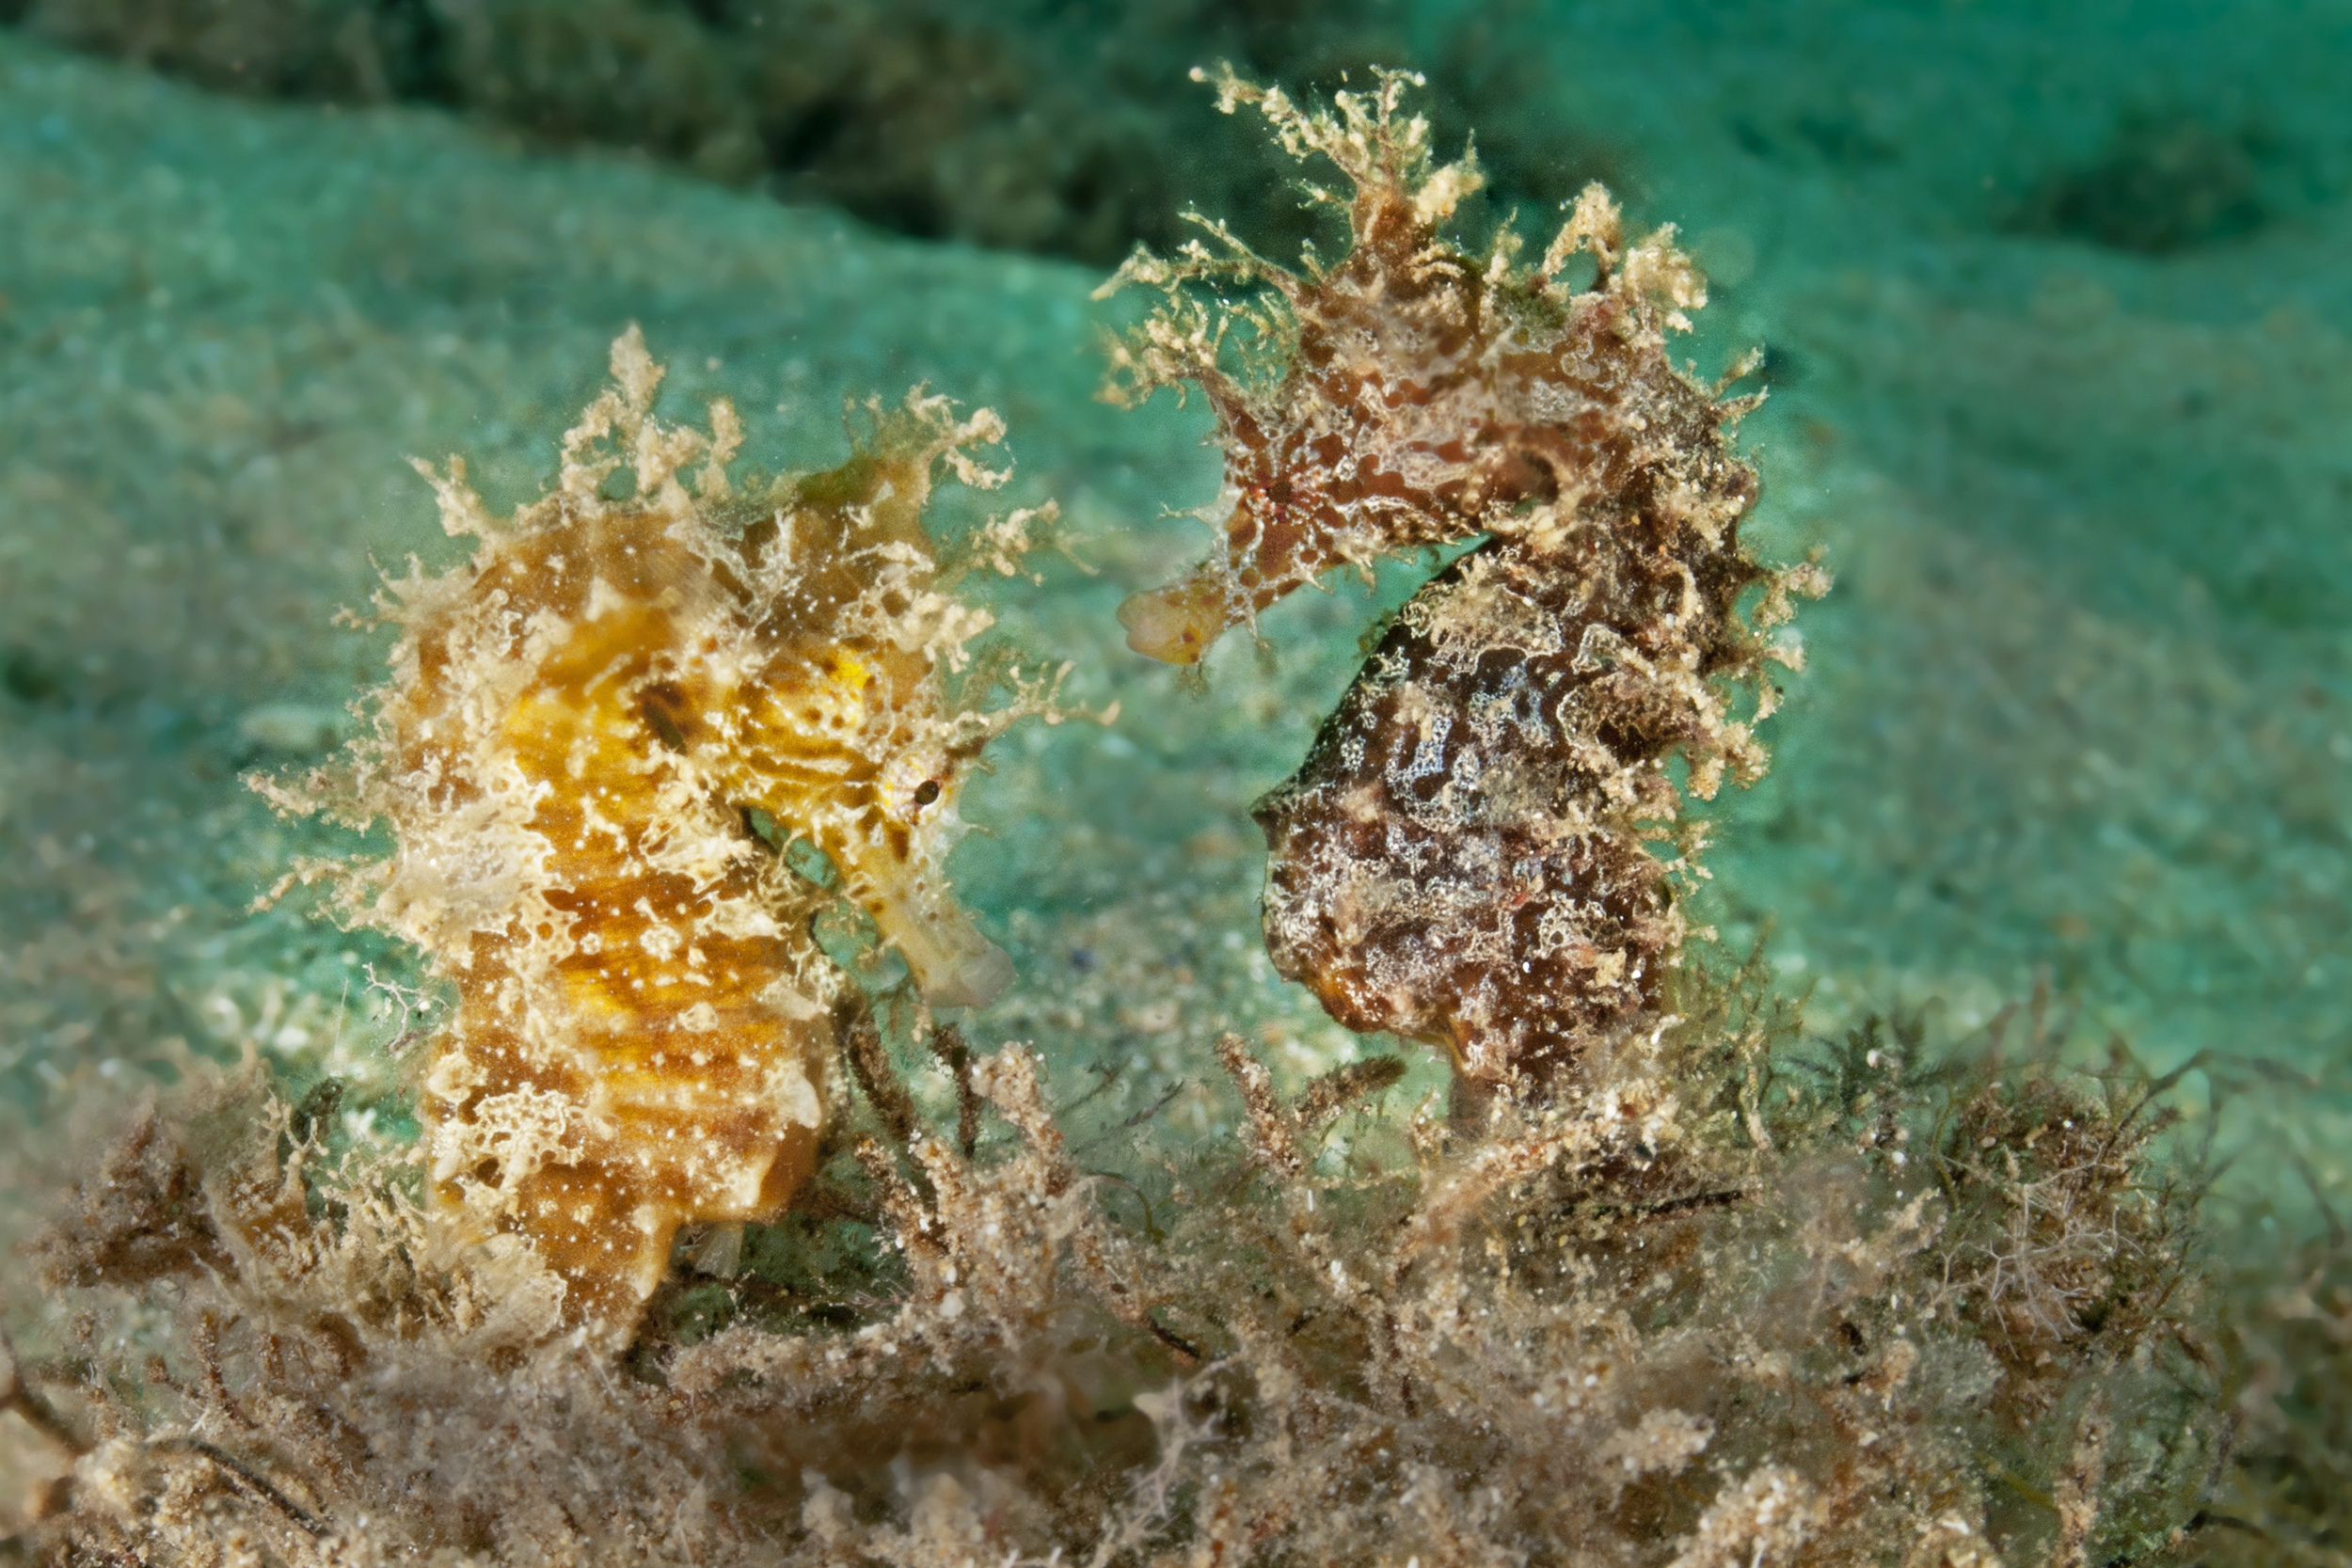 Hippocampus hippocampus  (Short-snouted seahorse). Photo by Gino Meskens/Guylian SOTW